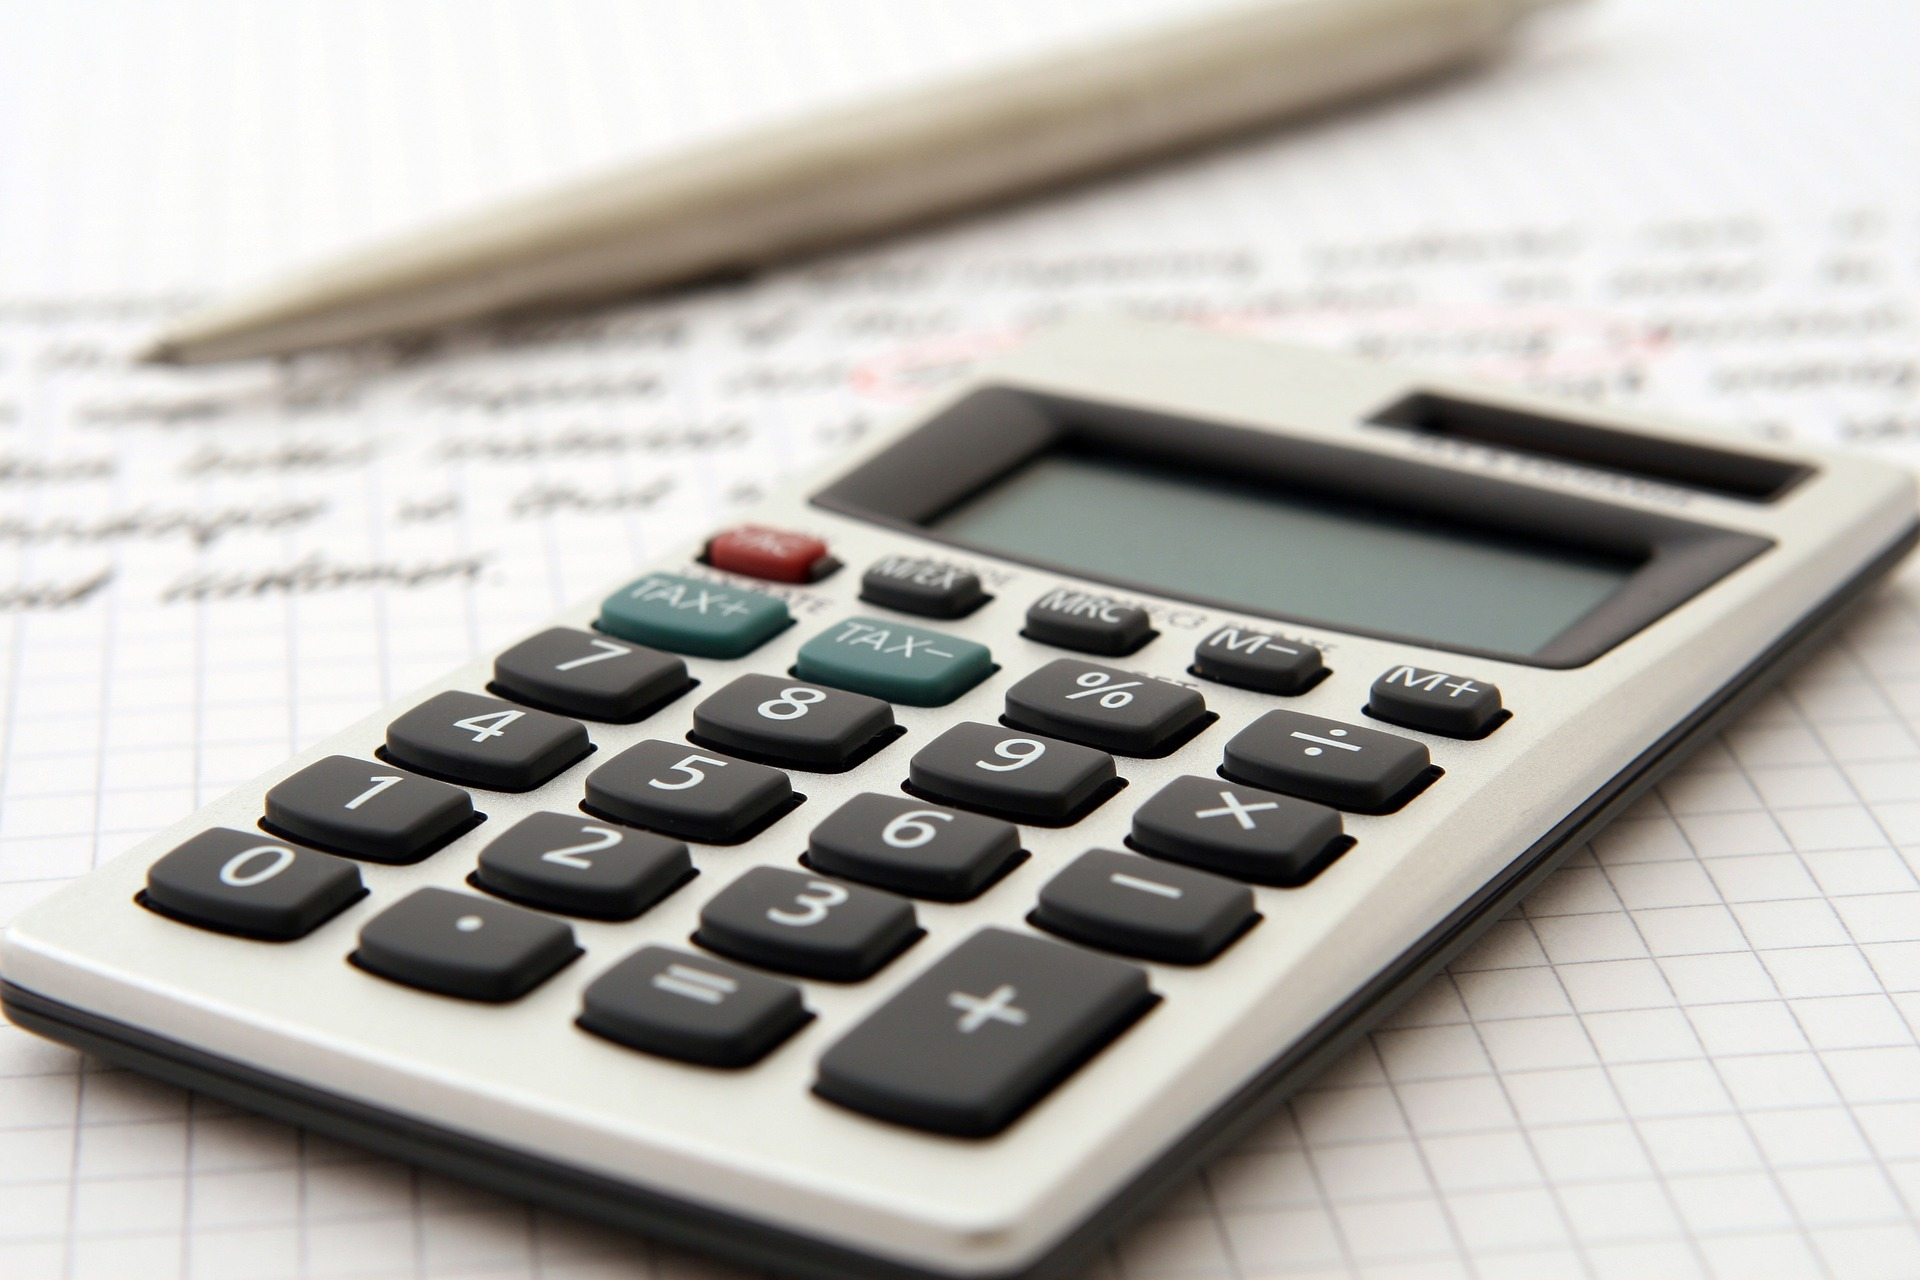 Tax professional calculator. IRS Problems? Rucker Tax can help.